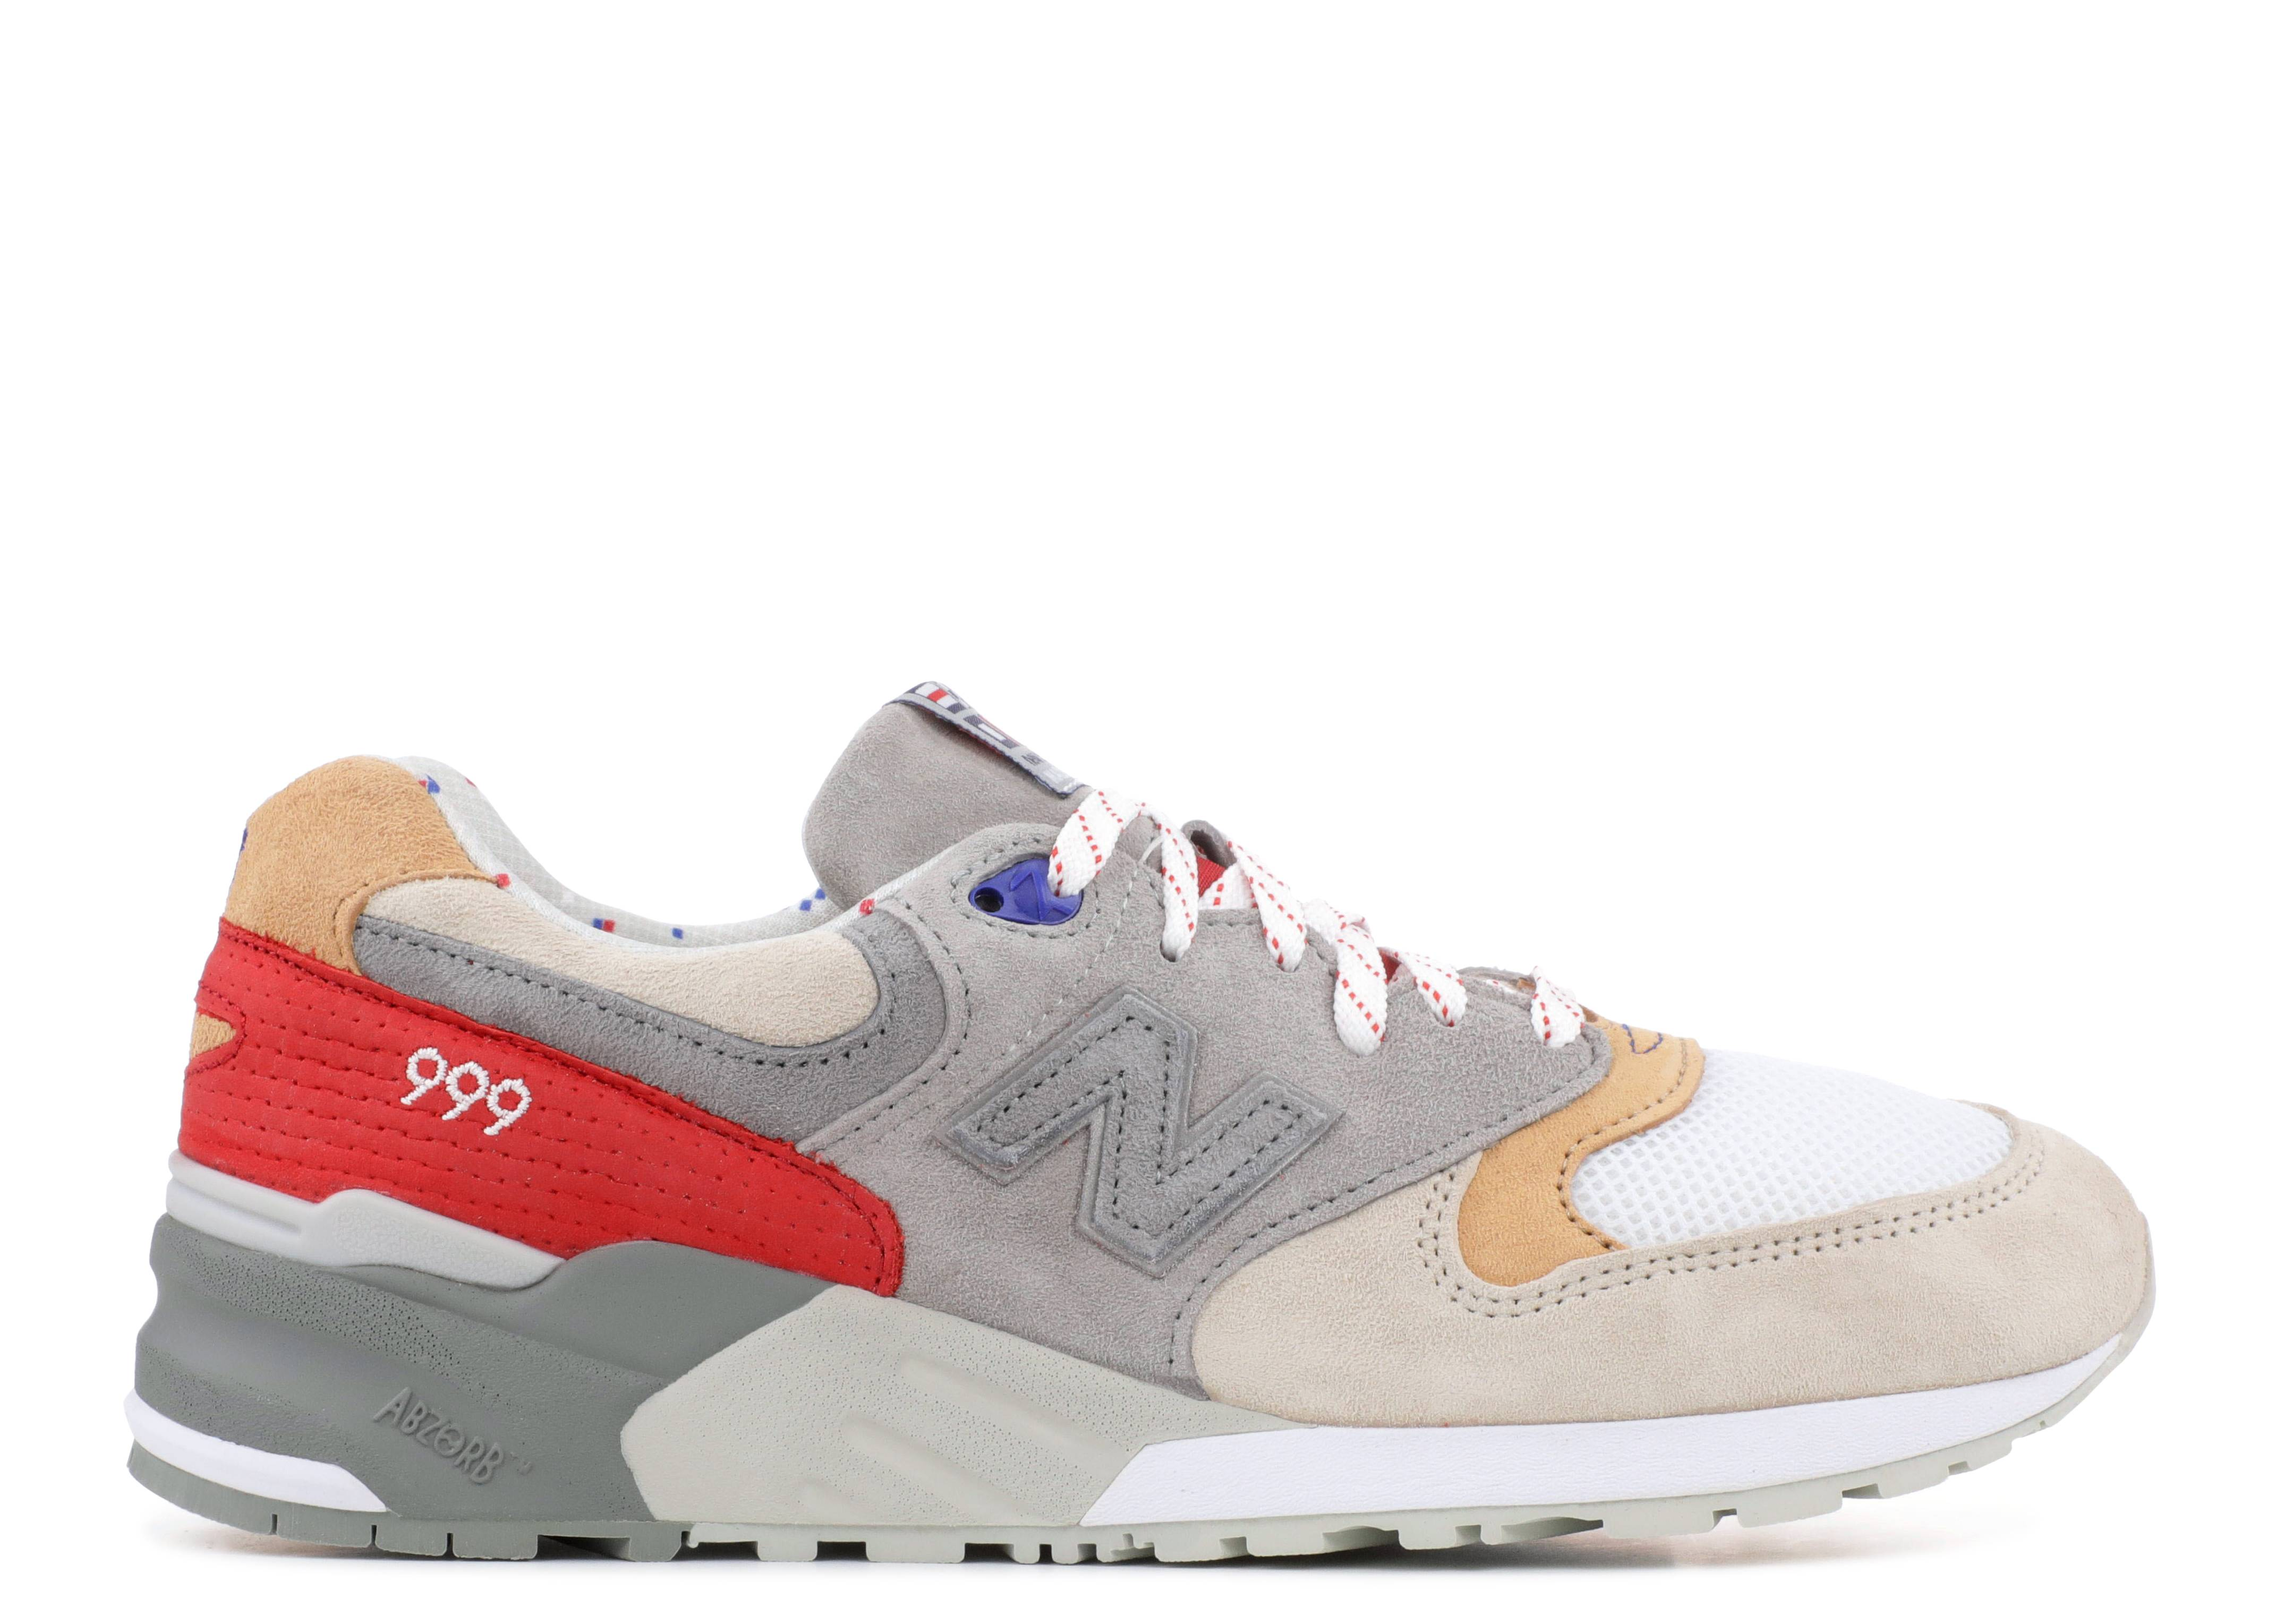 hot sale online be786 e9815 new balance x concepts 999